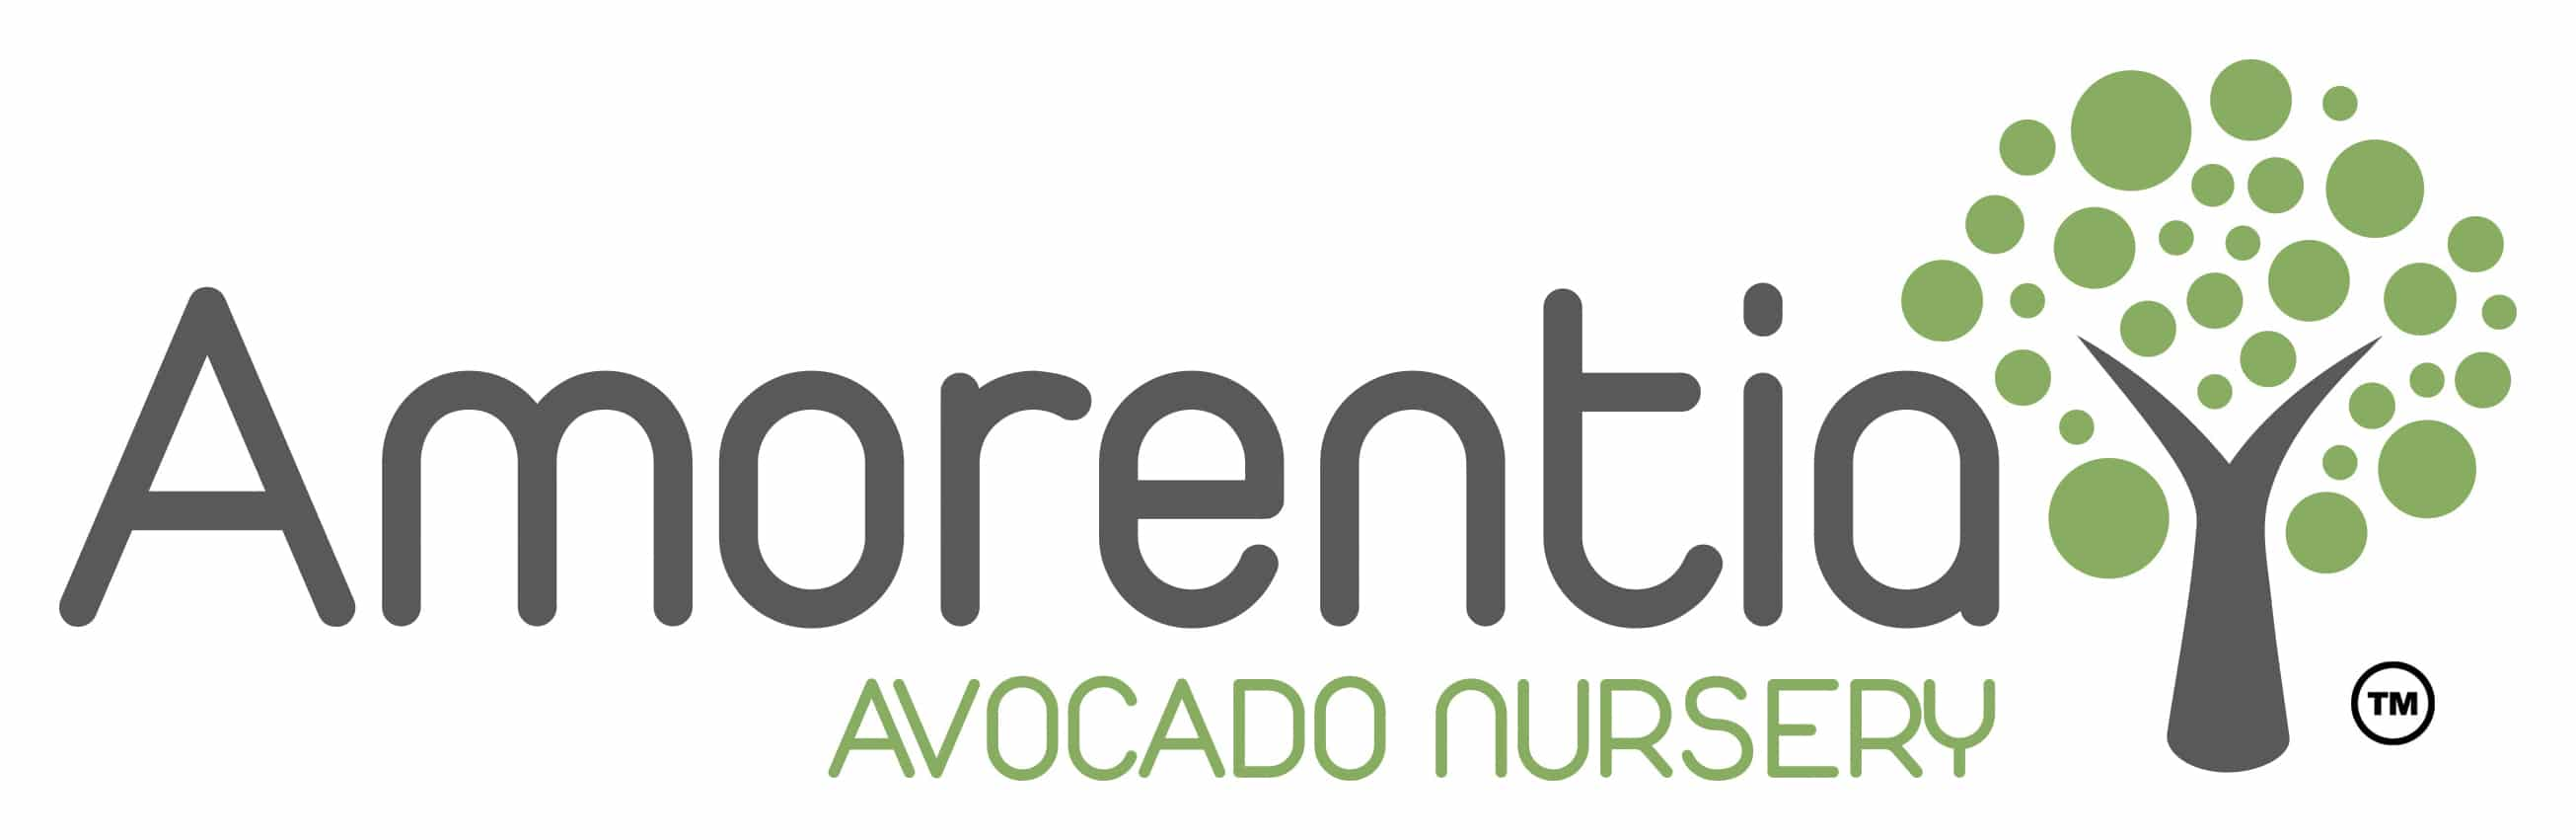 Amorentia_Avocado_Nursery